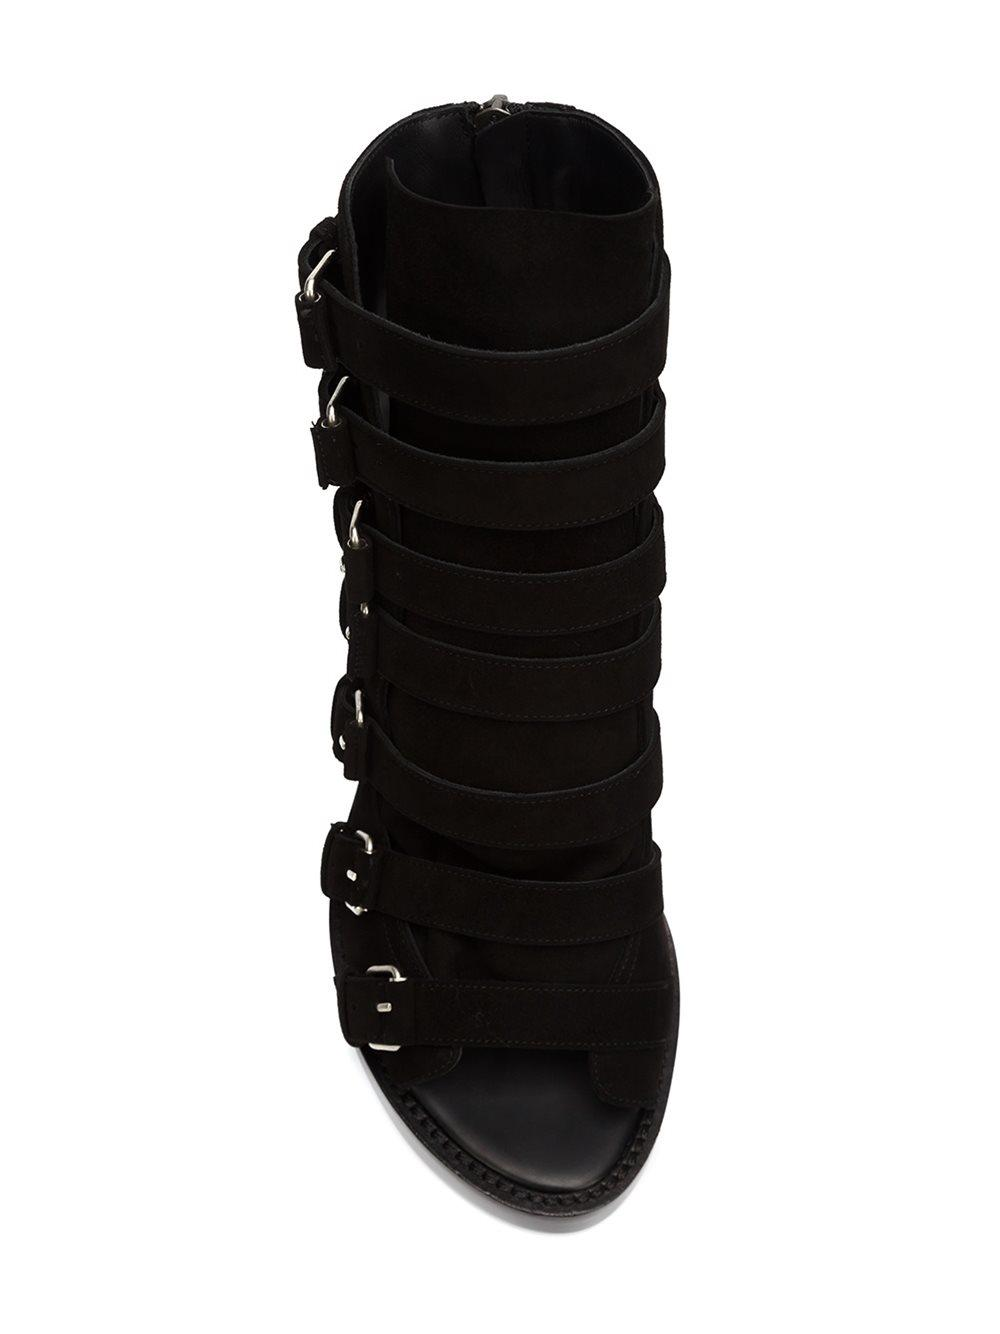 Ann Demeulemeester Leather Strappy Open Toe Boots in Black